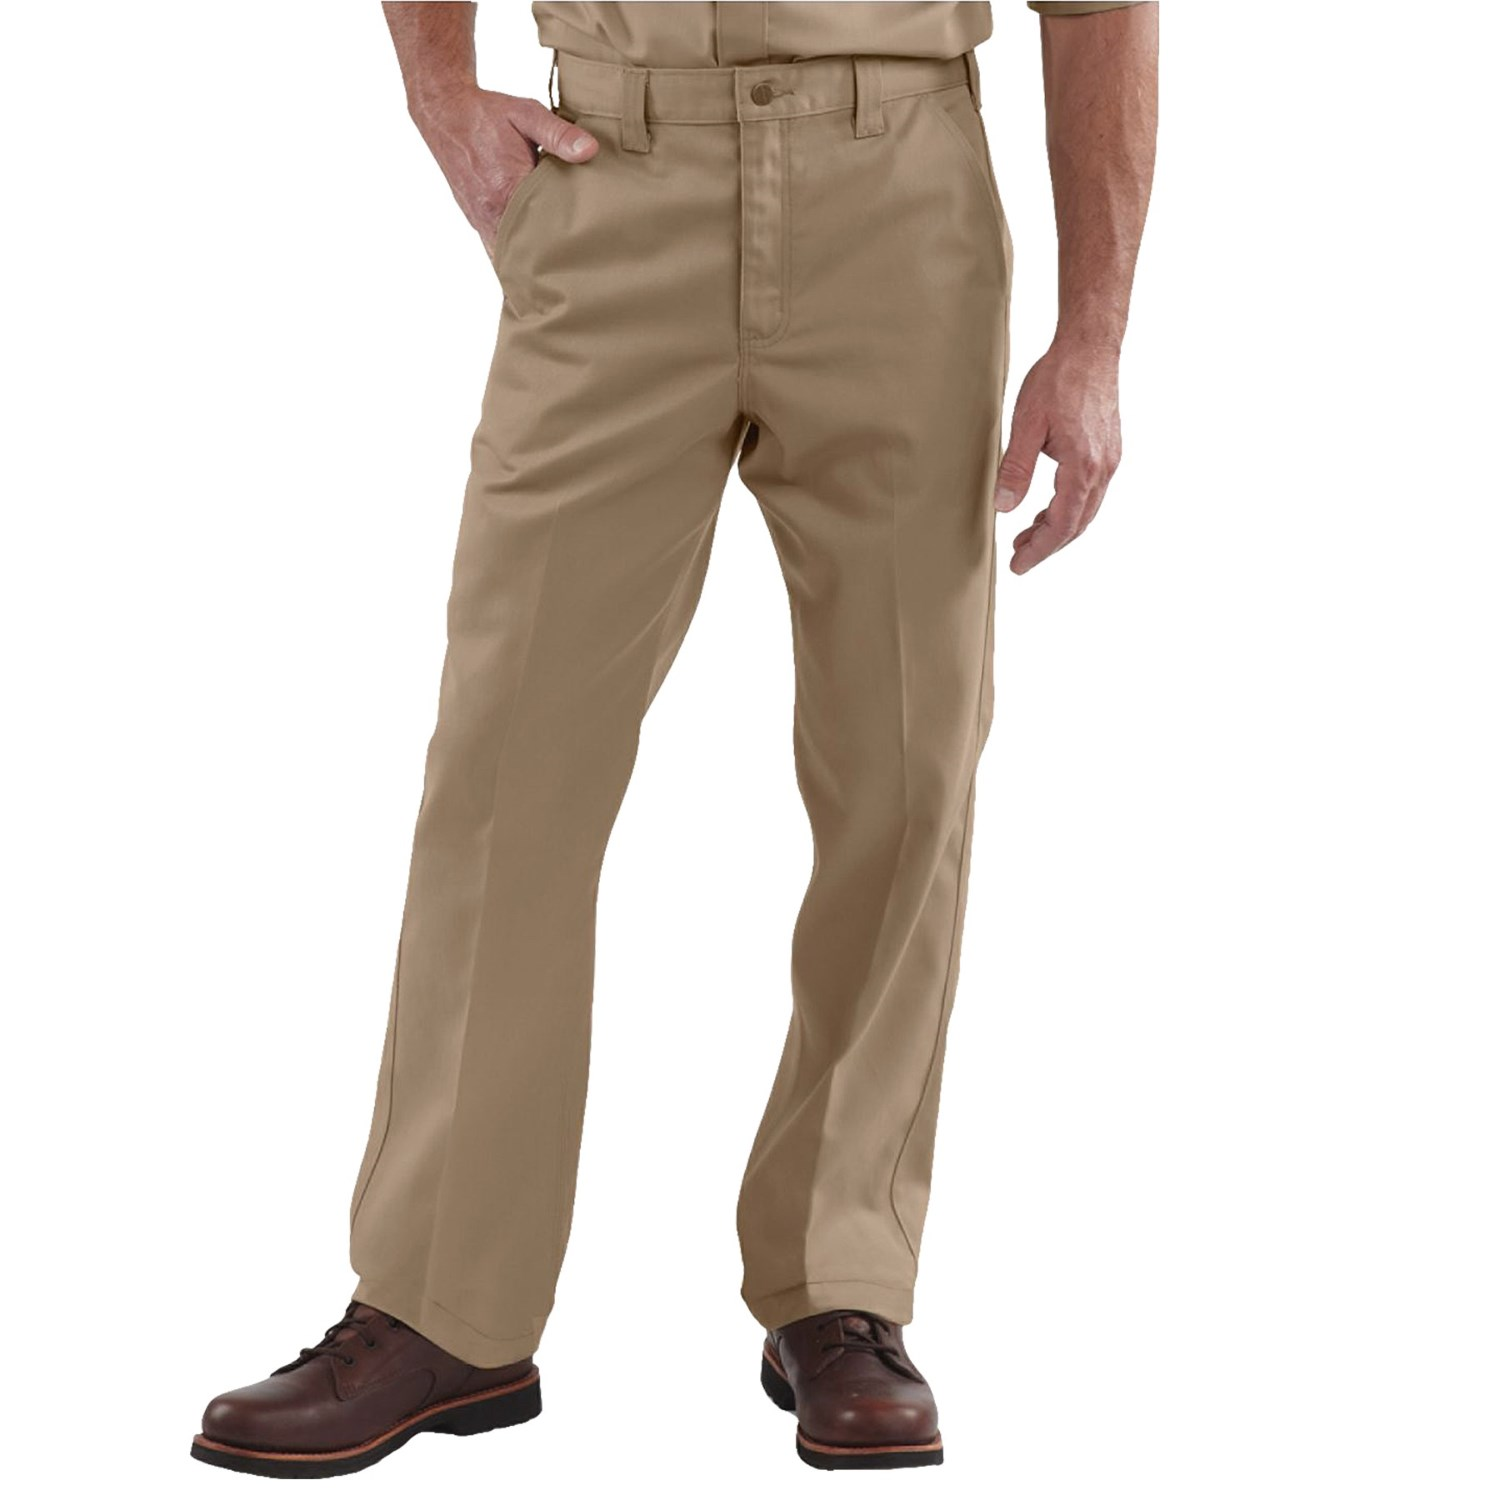 Carhartt Twill Work Pants (For Big and Tall Men)